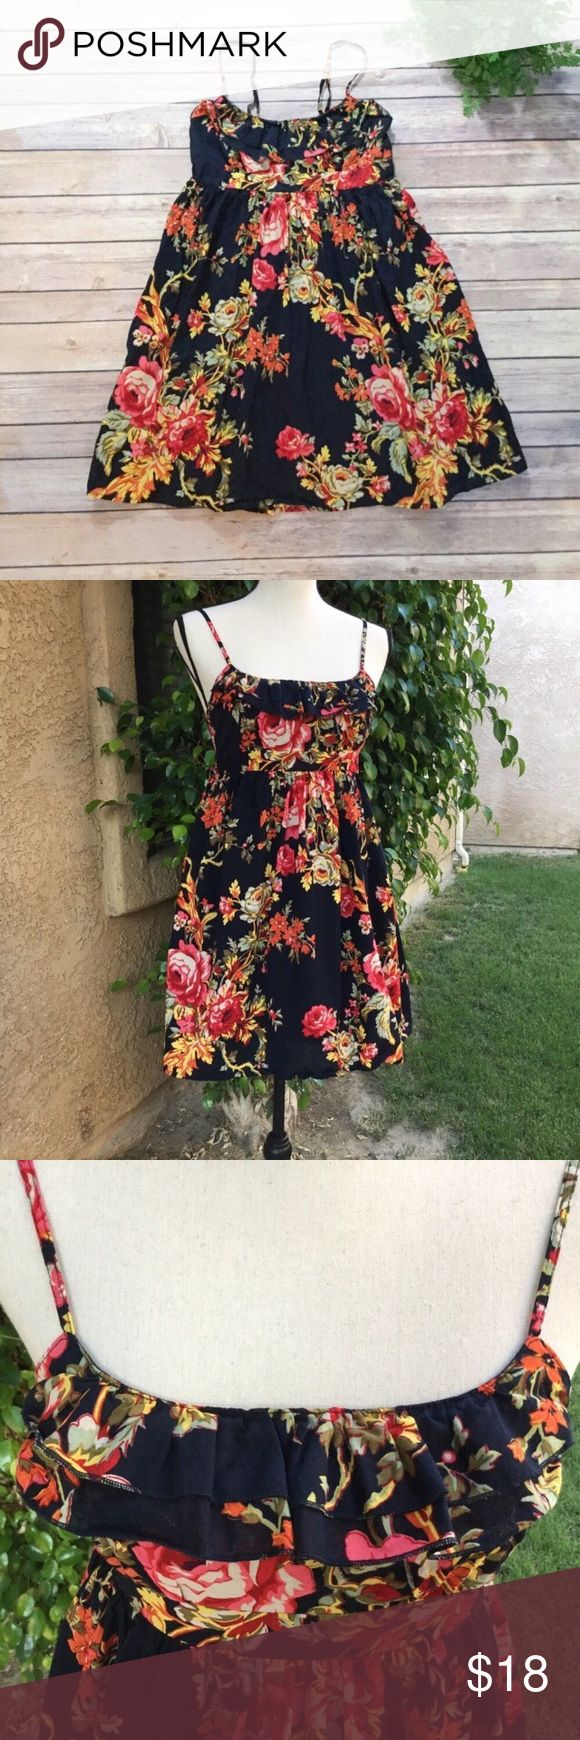 """Xhilaration Floral Fit Flare Sleeveless Dress M 🍃 I thought this was black, but in the sunlight it looks very dark blue. Double ruffle around the top, adjustable straps. Back has elastic smocking and ties. Skirt portion is lined. Xhilaration size medium. So cute with cowboy boots and a cardigan or denim jacket. Perfect for holiday parties.    Chest-28"""" Waist-28"""" Length-23"""", taken from side seam at the underarm.   🌸 Fabric-100% cotton 🌸 Condition-Excellent pre owned condition 🌸  Boho…"""